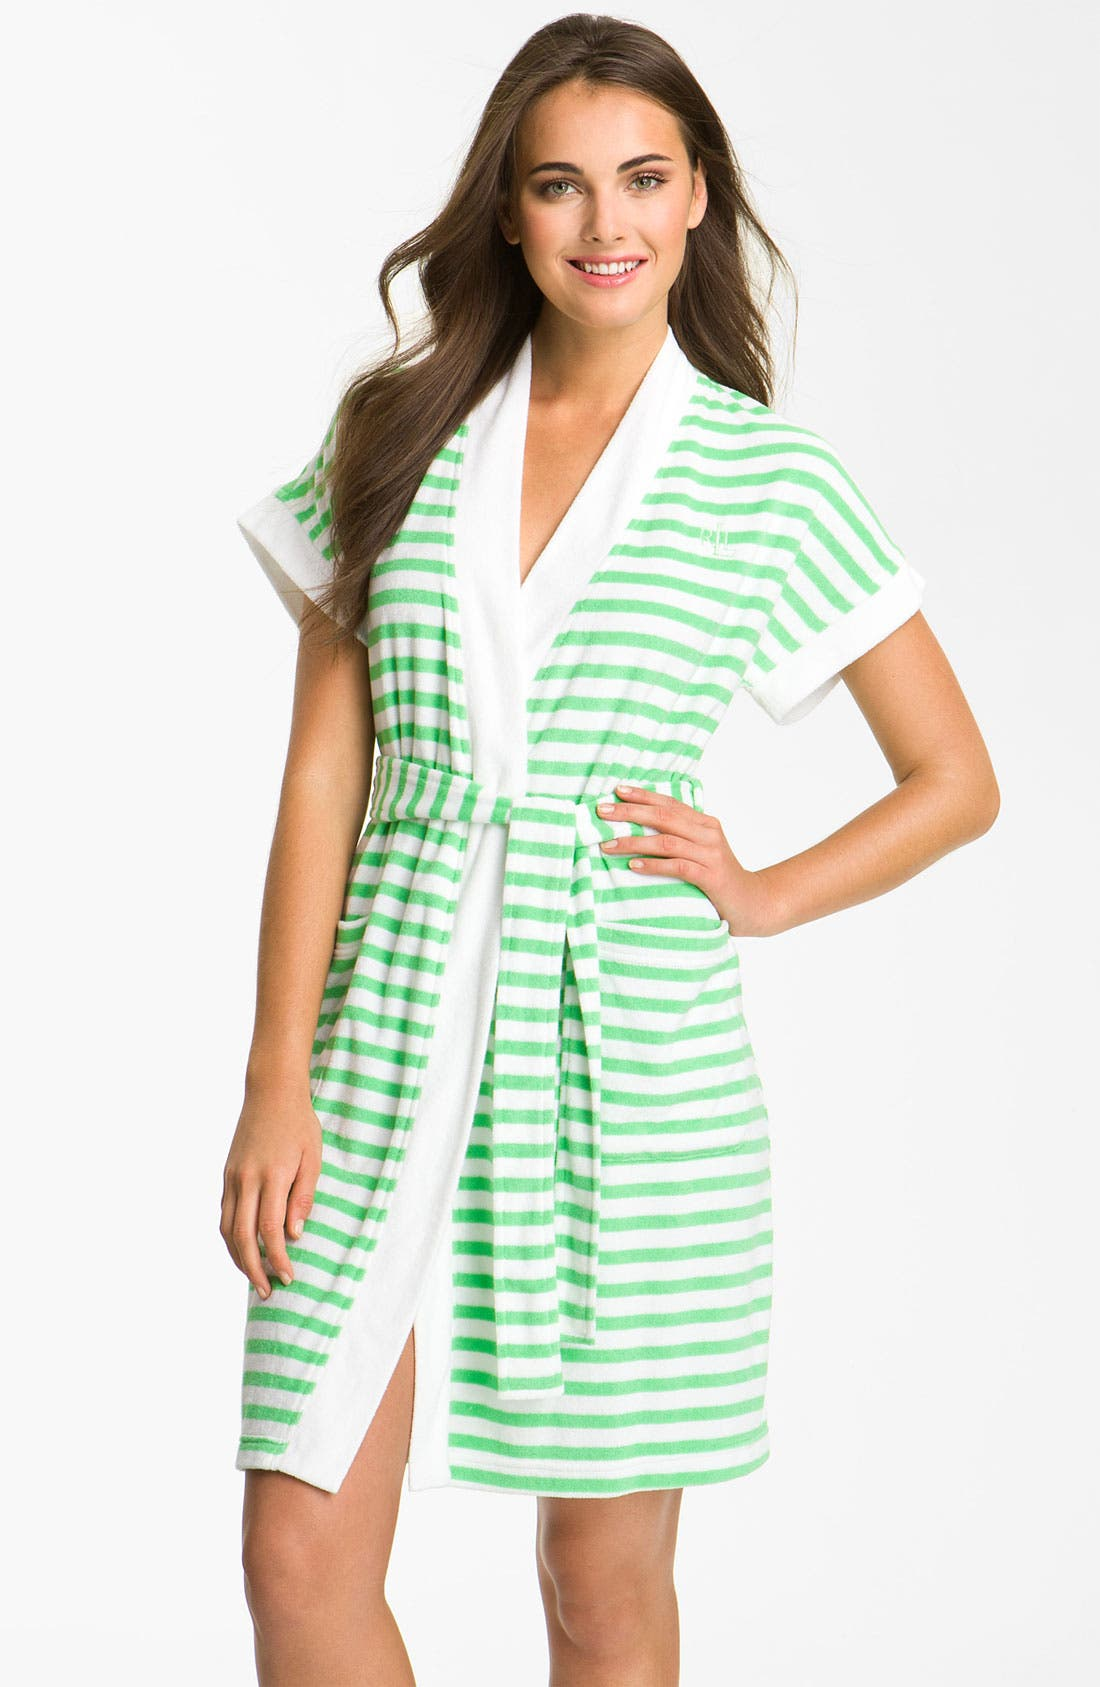 Main Image - Lauren Ralph Lauren Sleepwear Stripe Spa Robe